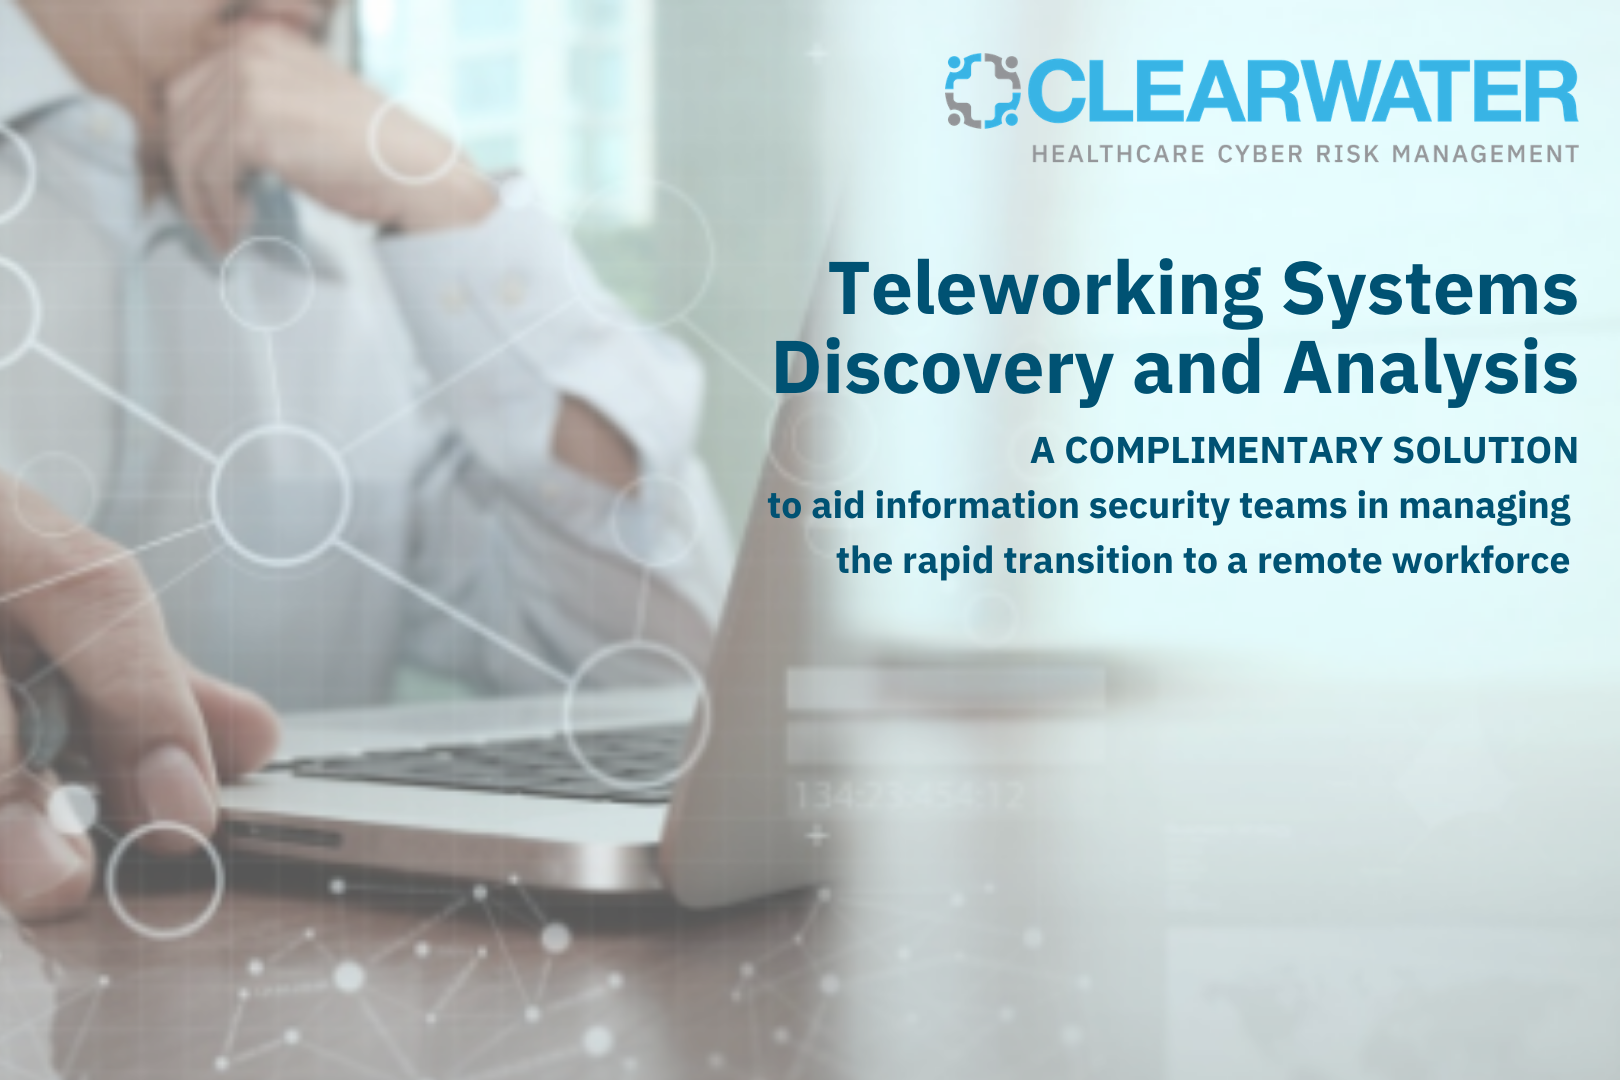 Teleworking Systems Discovery and Analysis, Clearwater